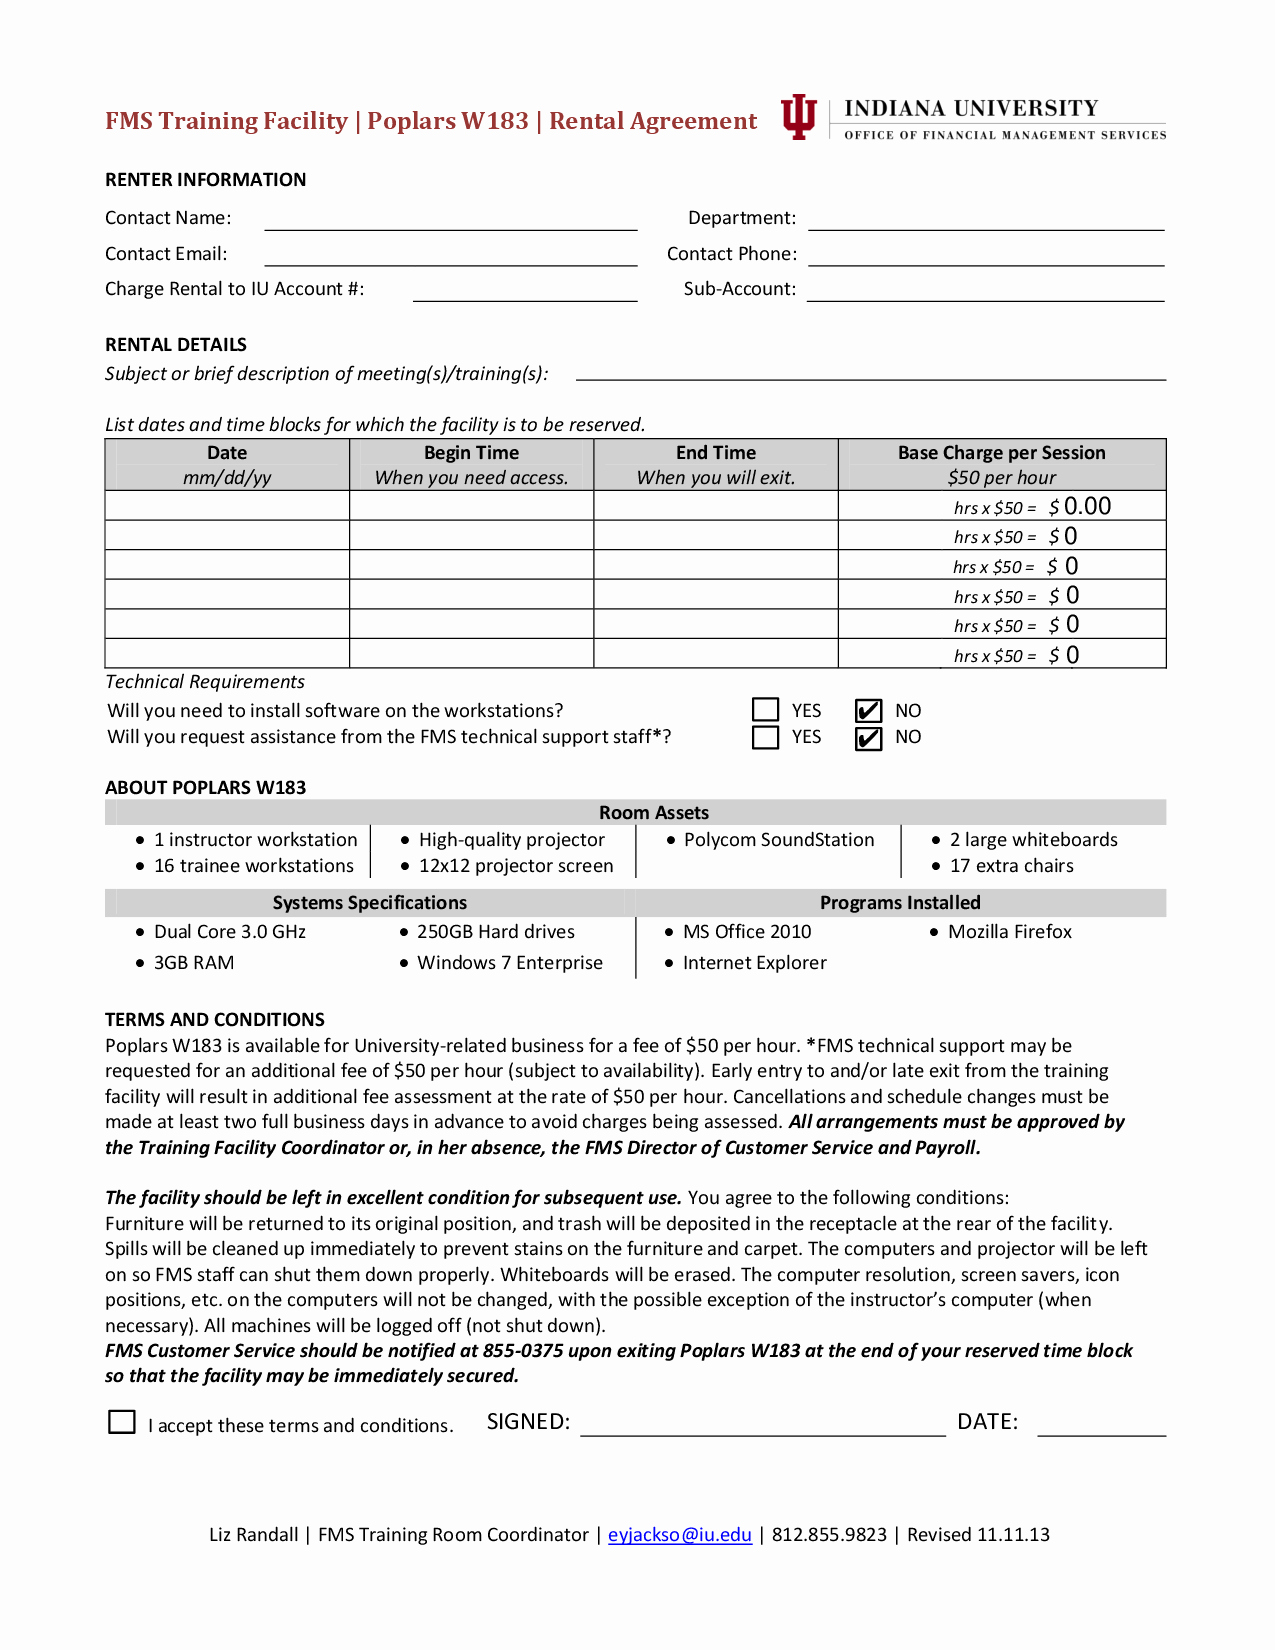 Facility Rental Agreement Template Awesome 10 Best Of Facility Rental Agreement Template